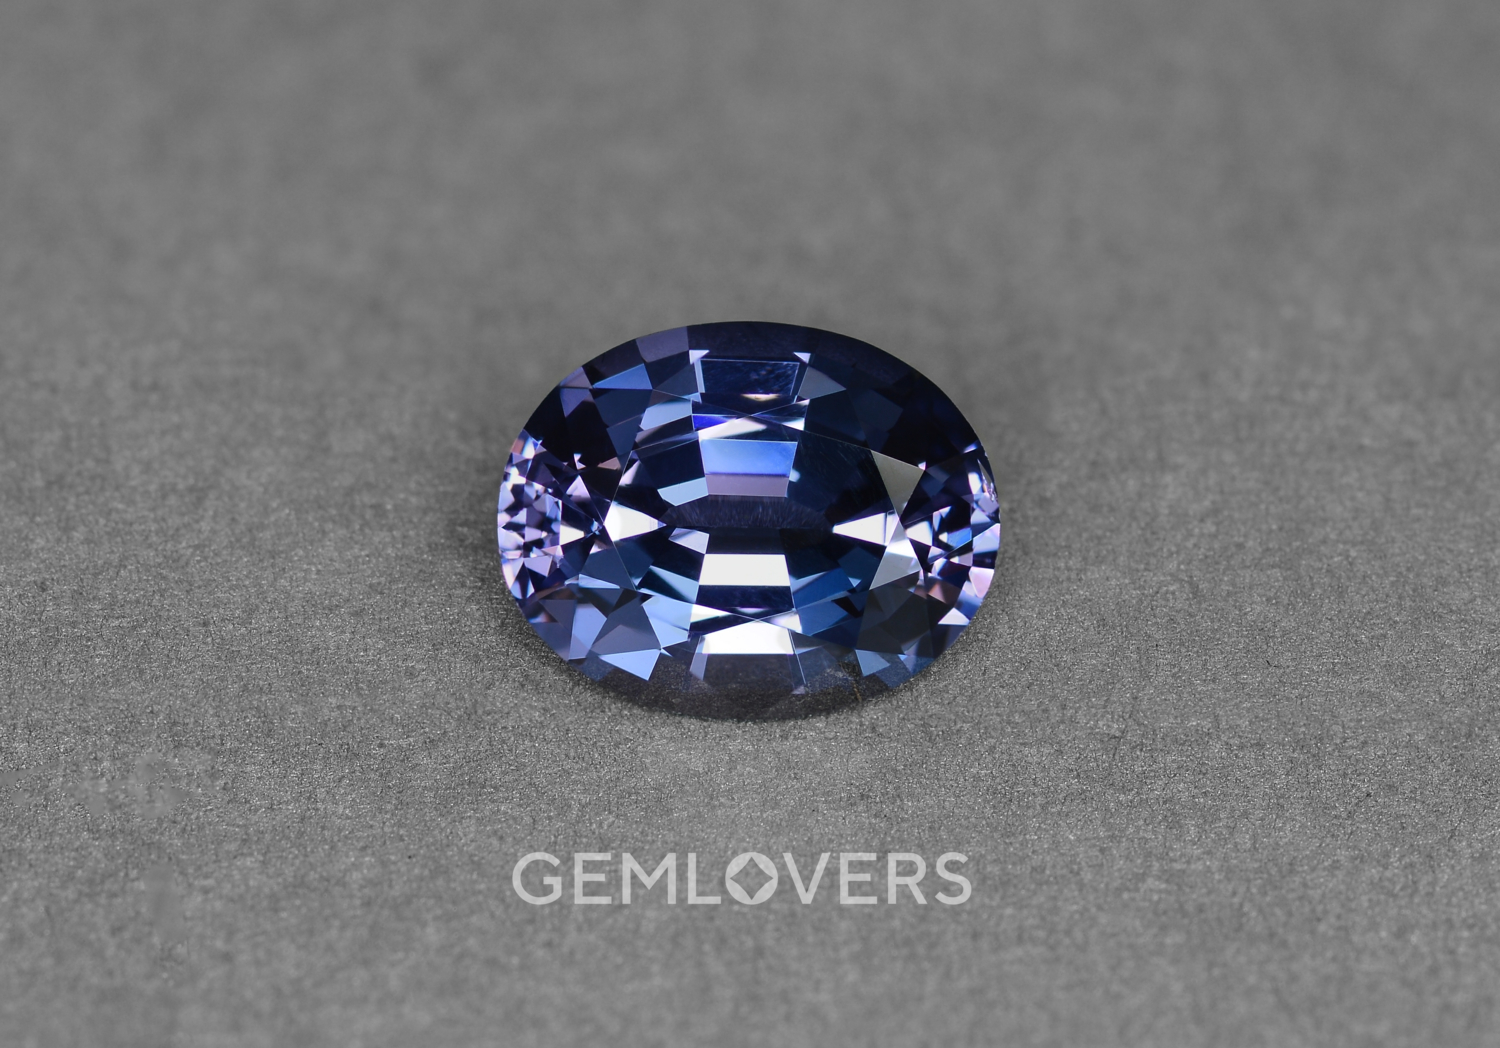 Color-changing spinel